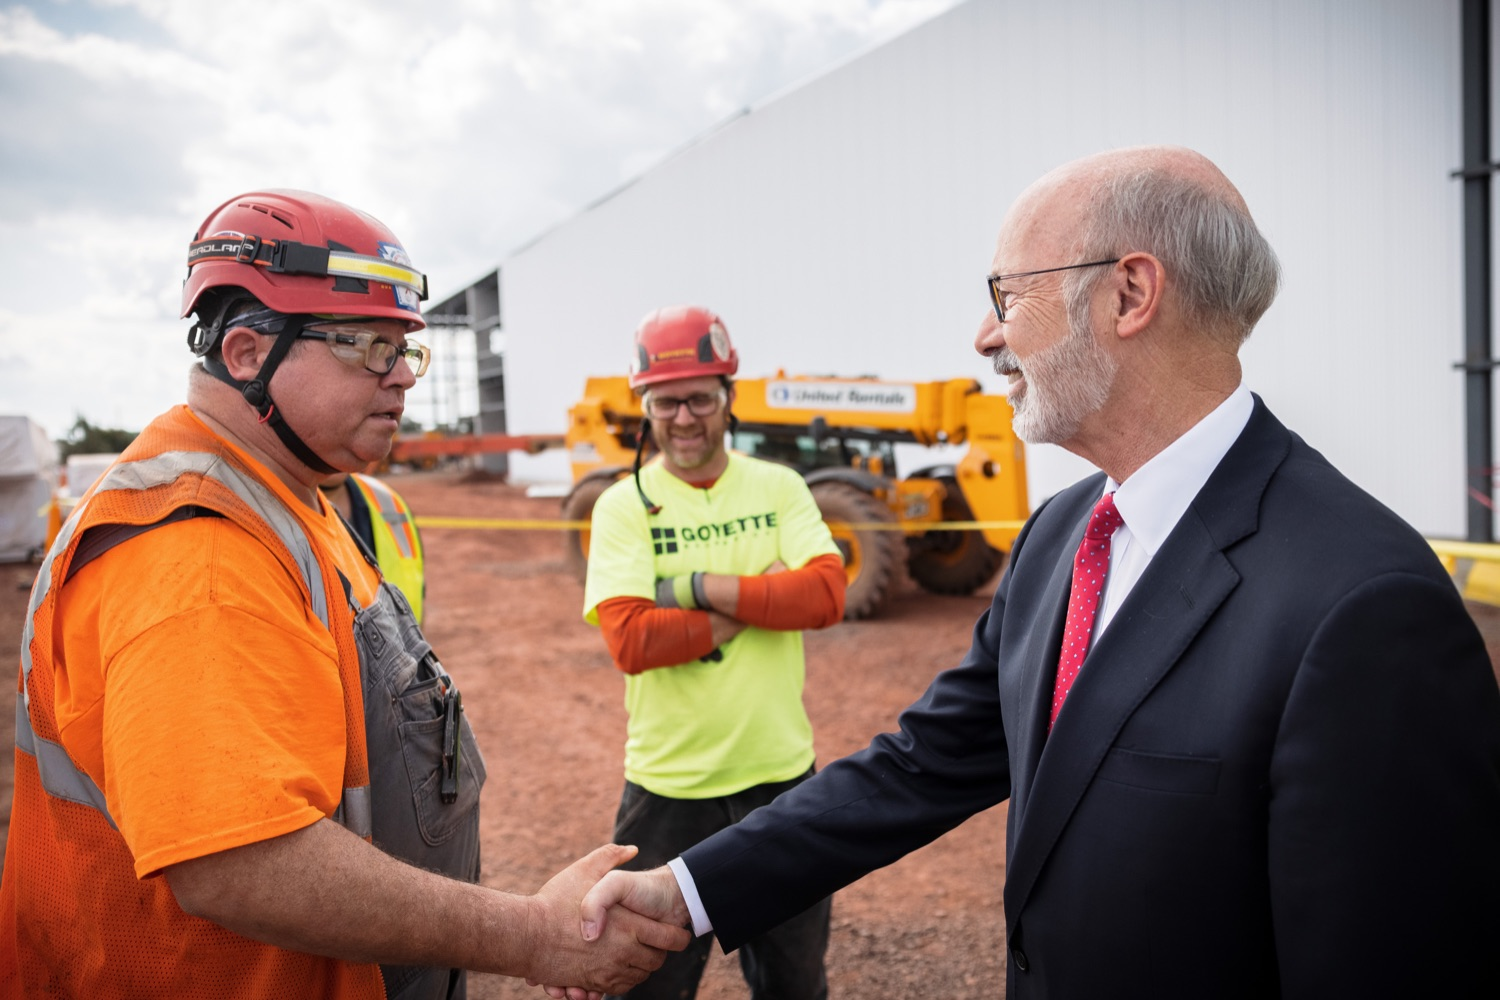 """<a href=""""https://filesource.wostreaming.net/commonwealthofpa/photo/20126_gov_economicDevelopment_dz_001.jpg"""" target=""""_blank"""">⇣Download Photo<br></a>Pennsylvania Governor Tom Wolf greeting construction workers as he tours the site.  Governor Tom Wolf joined Clemens Food Group leaders, Agriculture Secretary Russell Redding, Sen. Maria Collett, Rep. Steve Malagari and members of the Governors Action Team today to tour the construction of the companys new facility in Montgomery County. The Wolf Administration supported the project which will expand the business operations and create new jobs in the region. Hatfield, PA   October 8, 2021"""